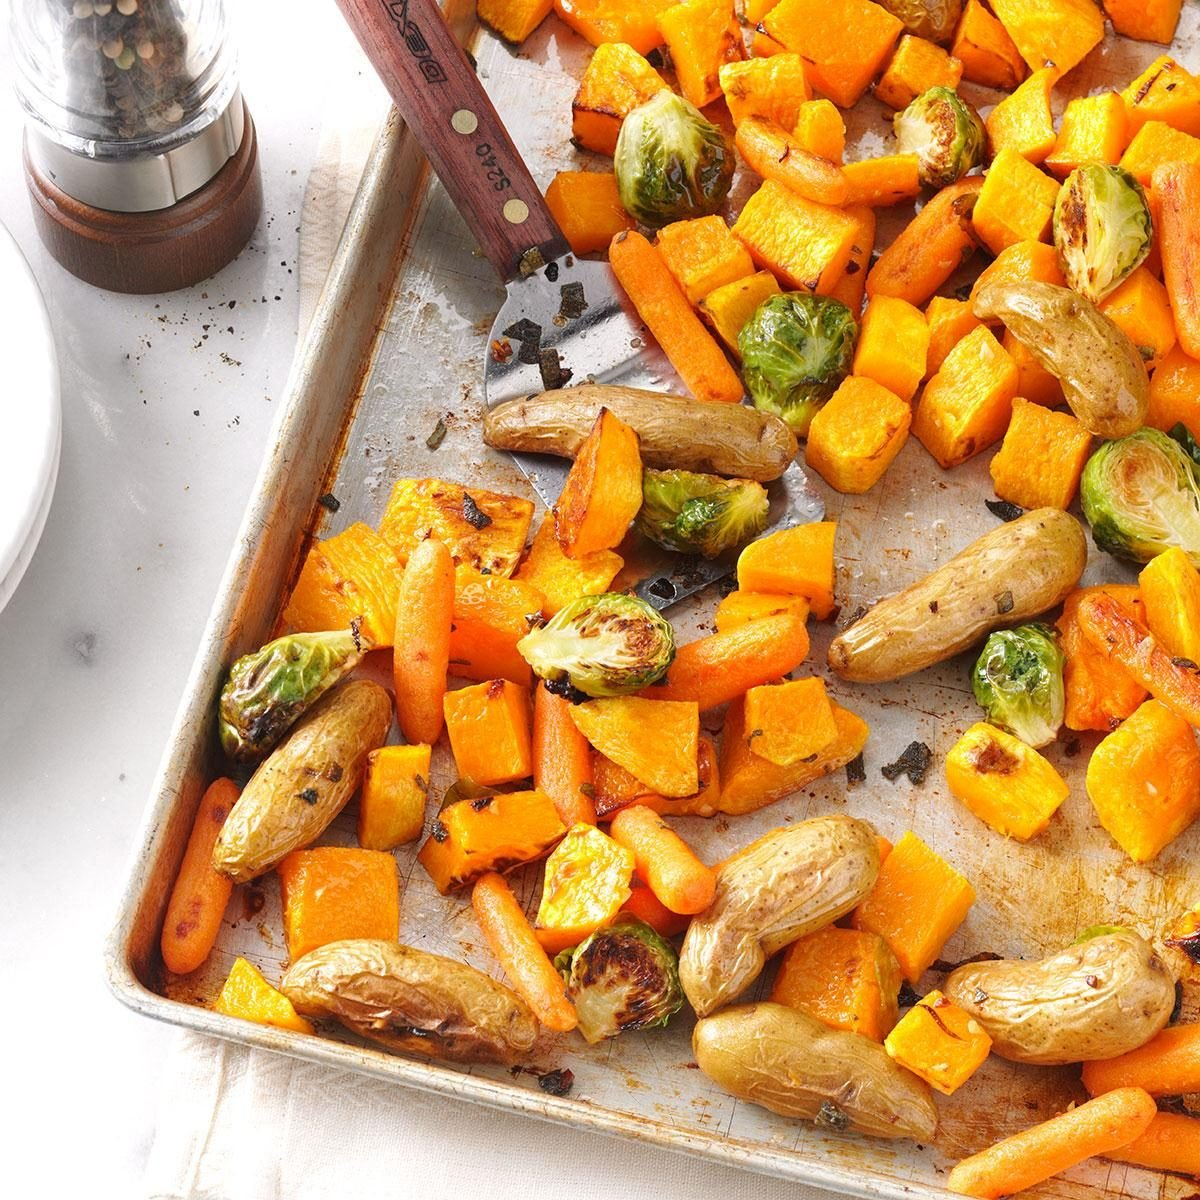 Roasted veggies on a baking sheet